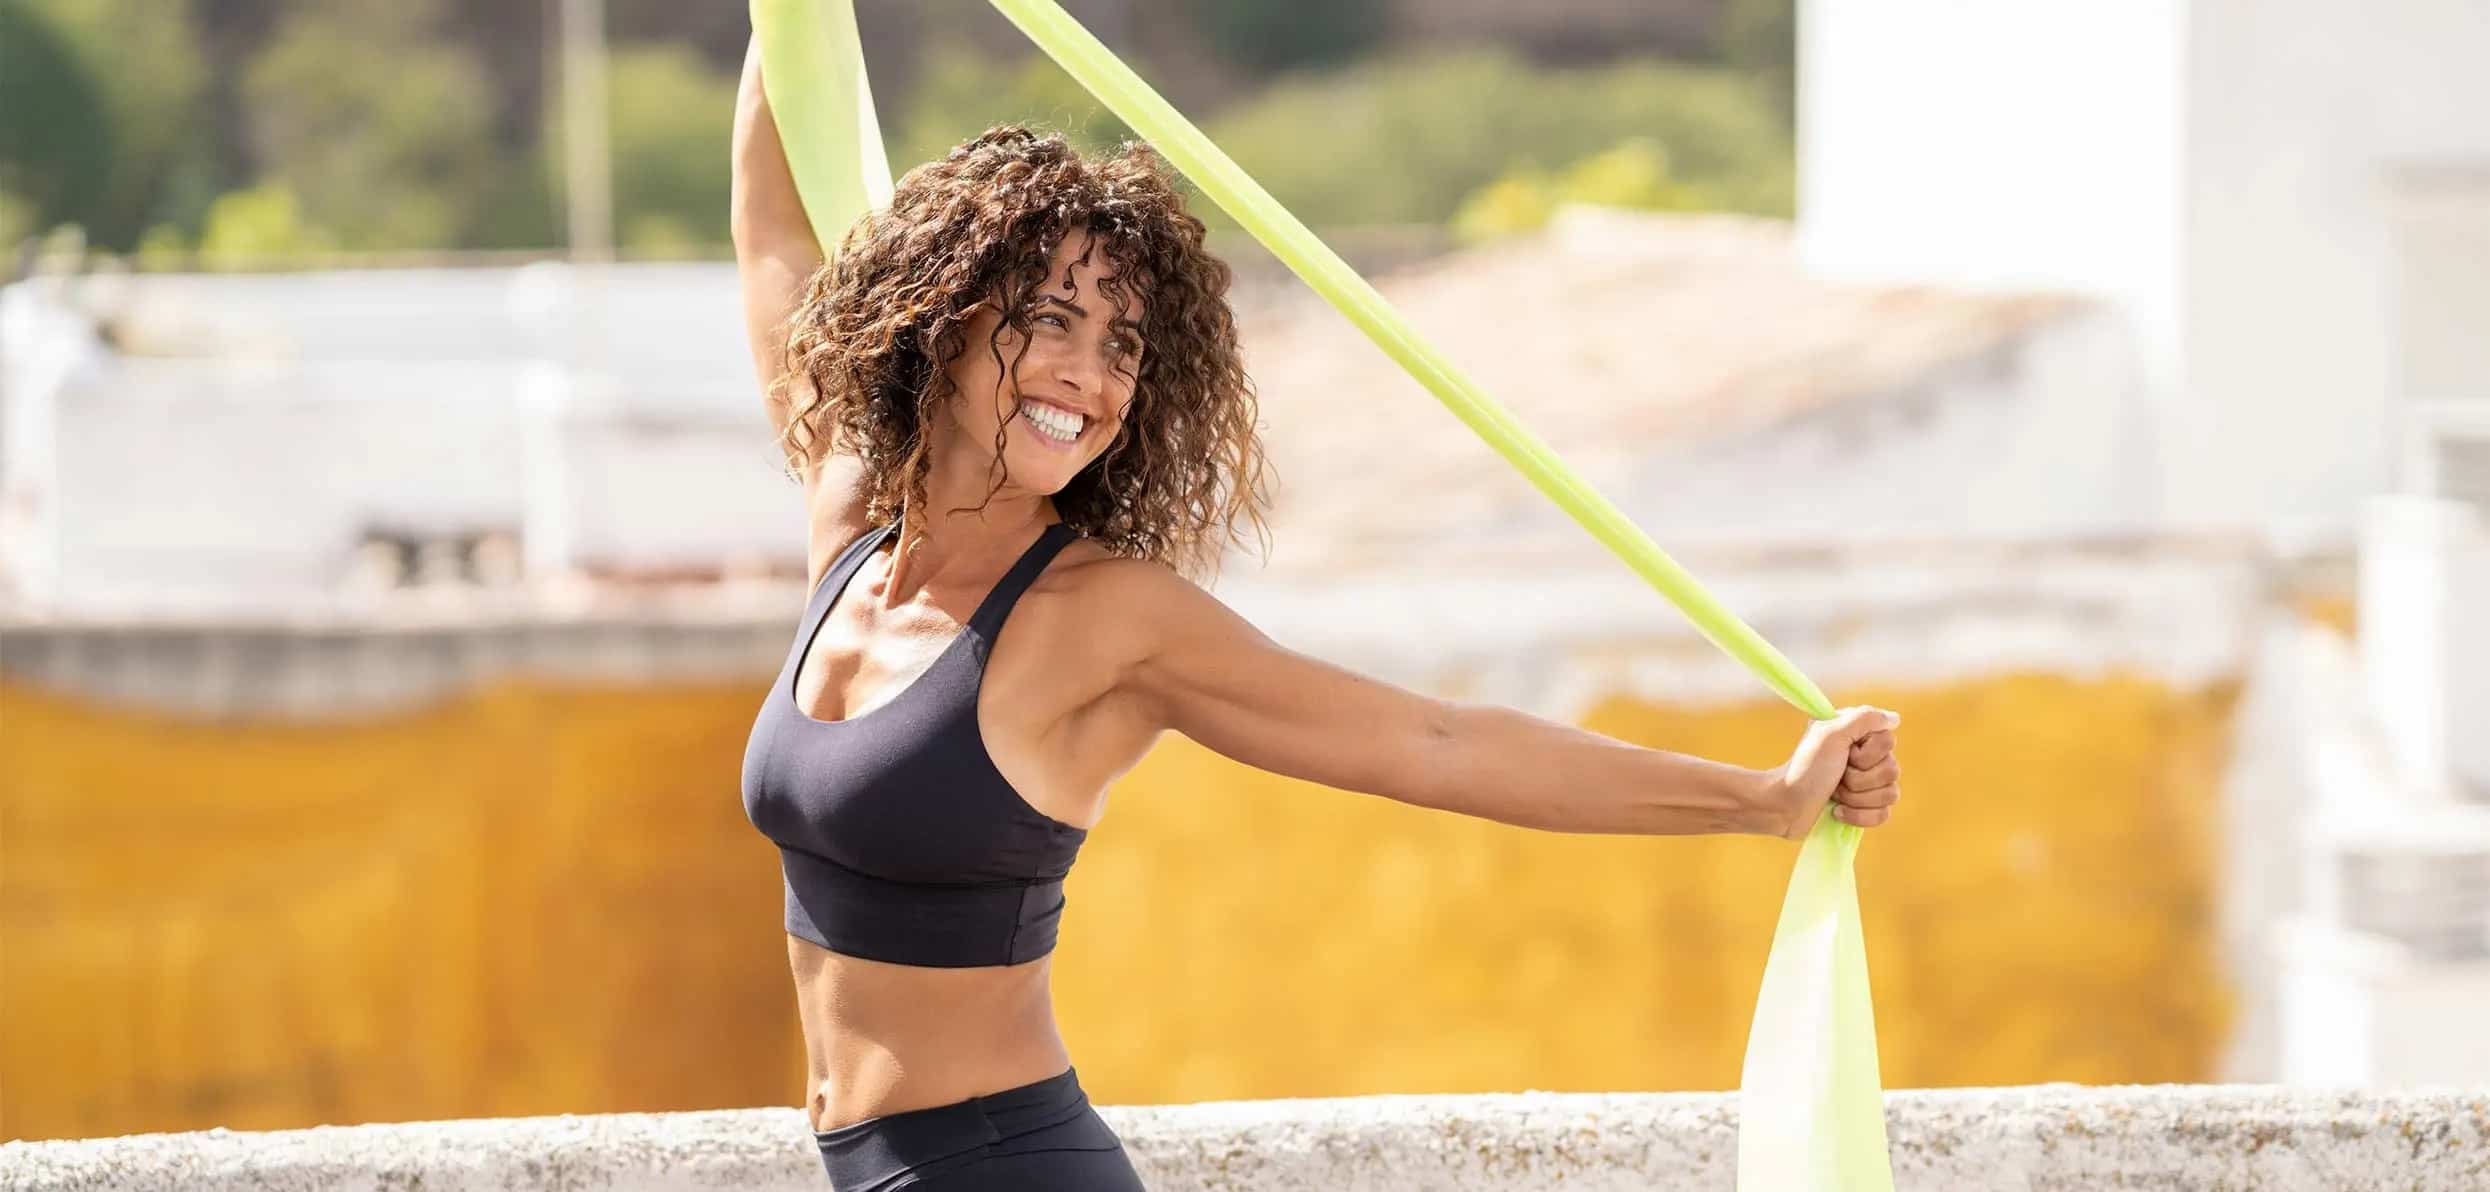 A happy woman happily dancing under the sun - low testosterone treatments